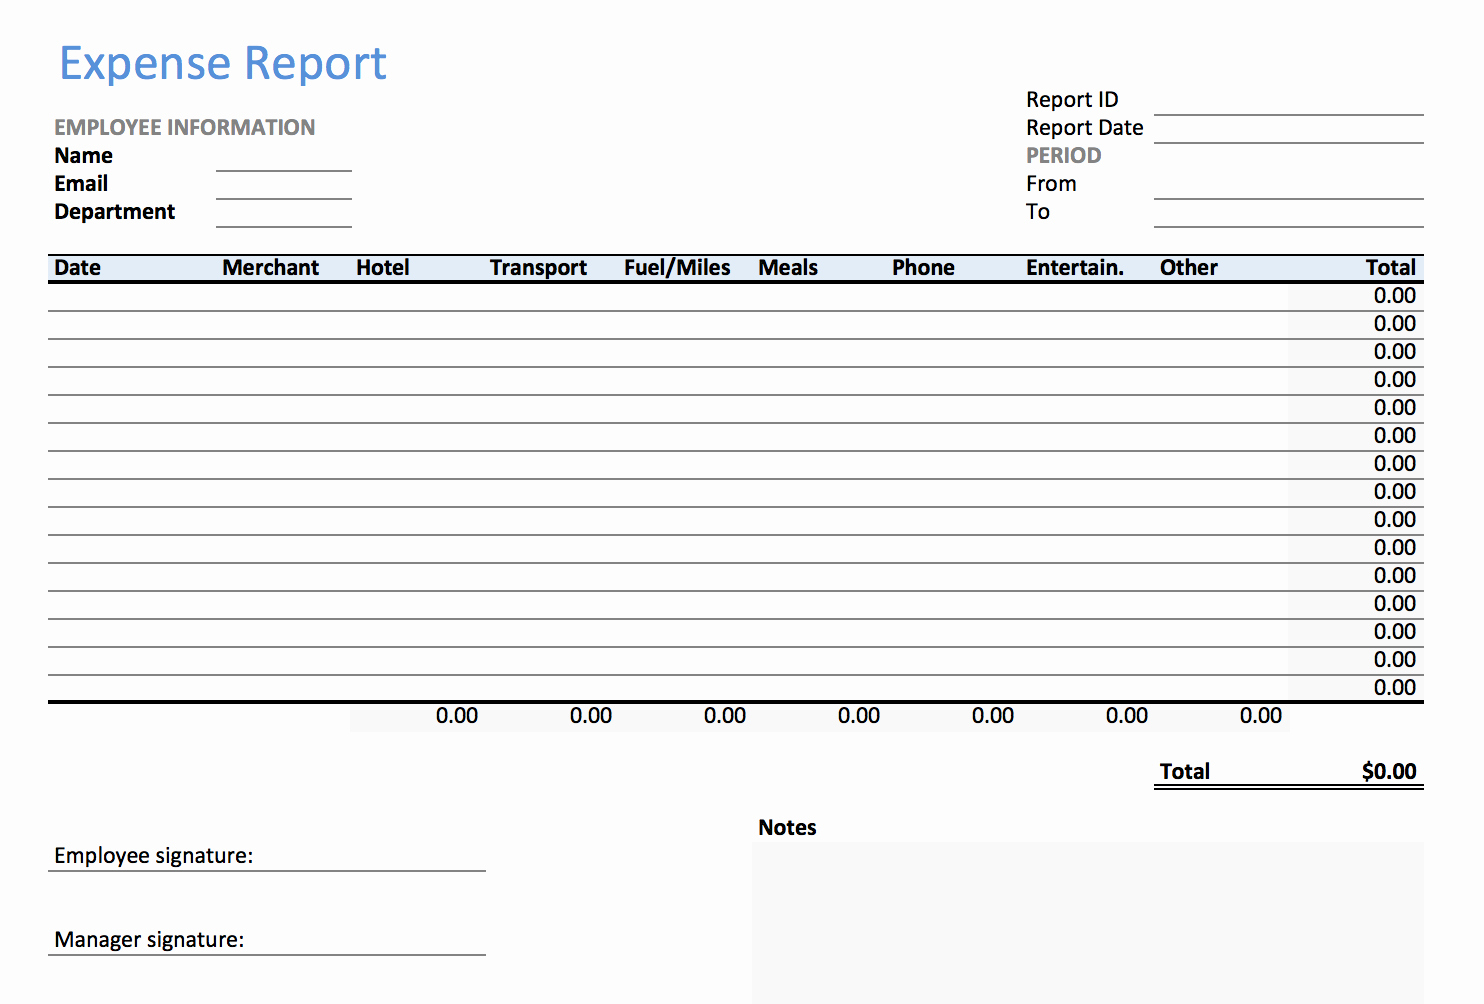 Expenses Report Template Excel Fresh Excel Expense Report Template Keepek